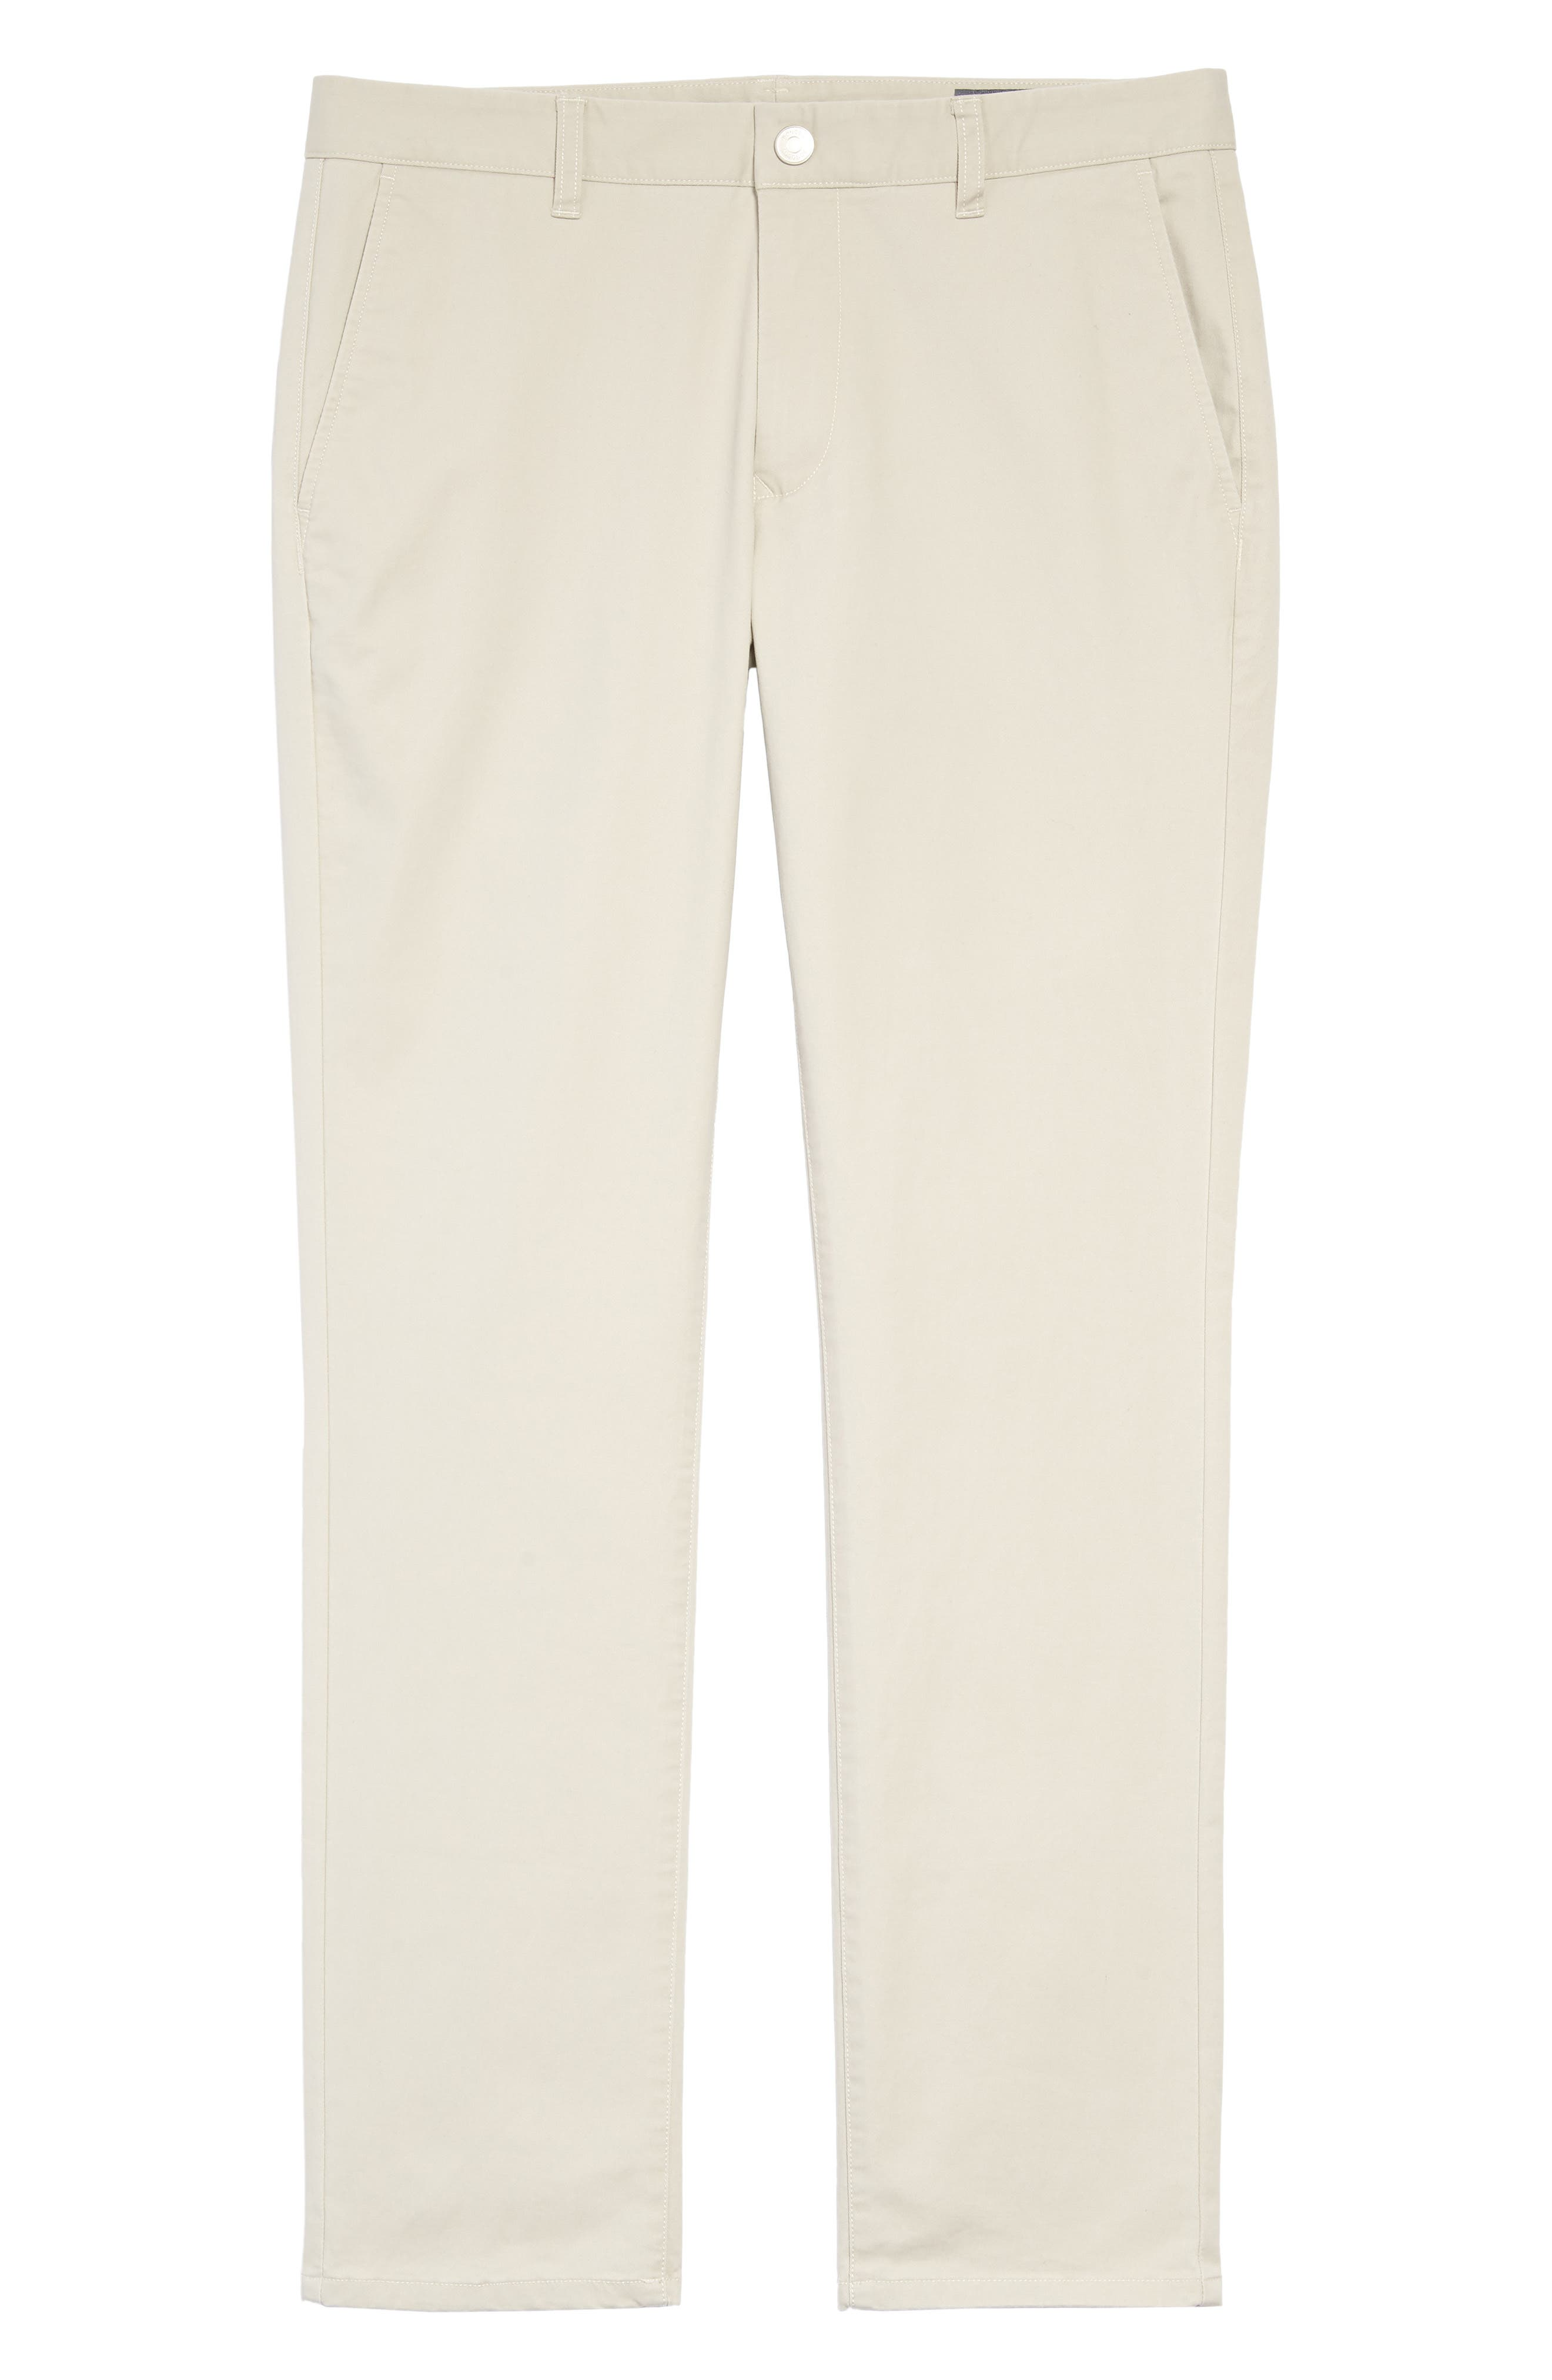 Tailored Fit Washed Stretch Cotton Chinos,                             Alternate thumbnail 6, color,                             Millstones